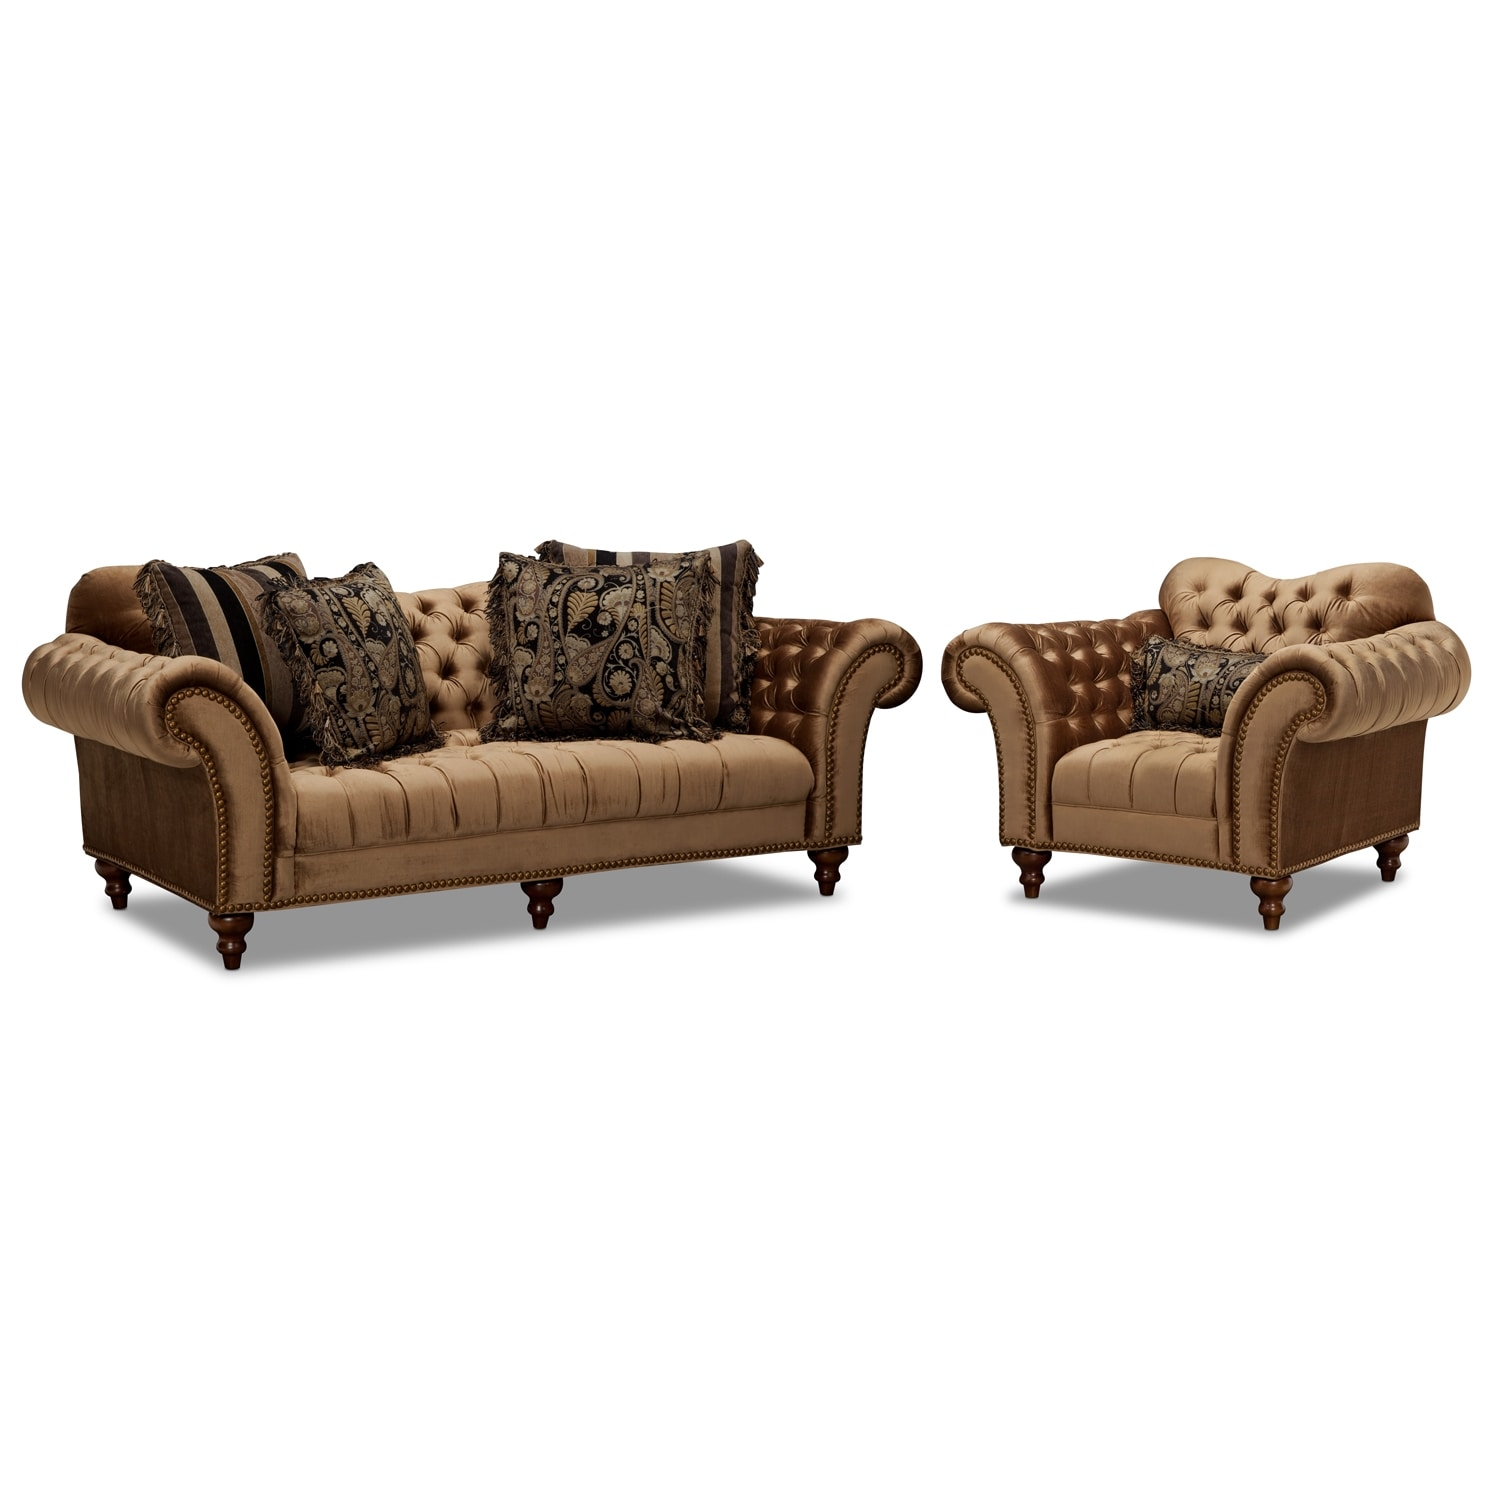 Living Room Furniture - Brittney Sofa and Chair Set - Bronze